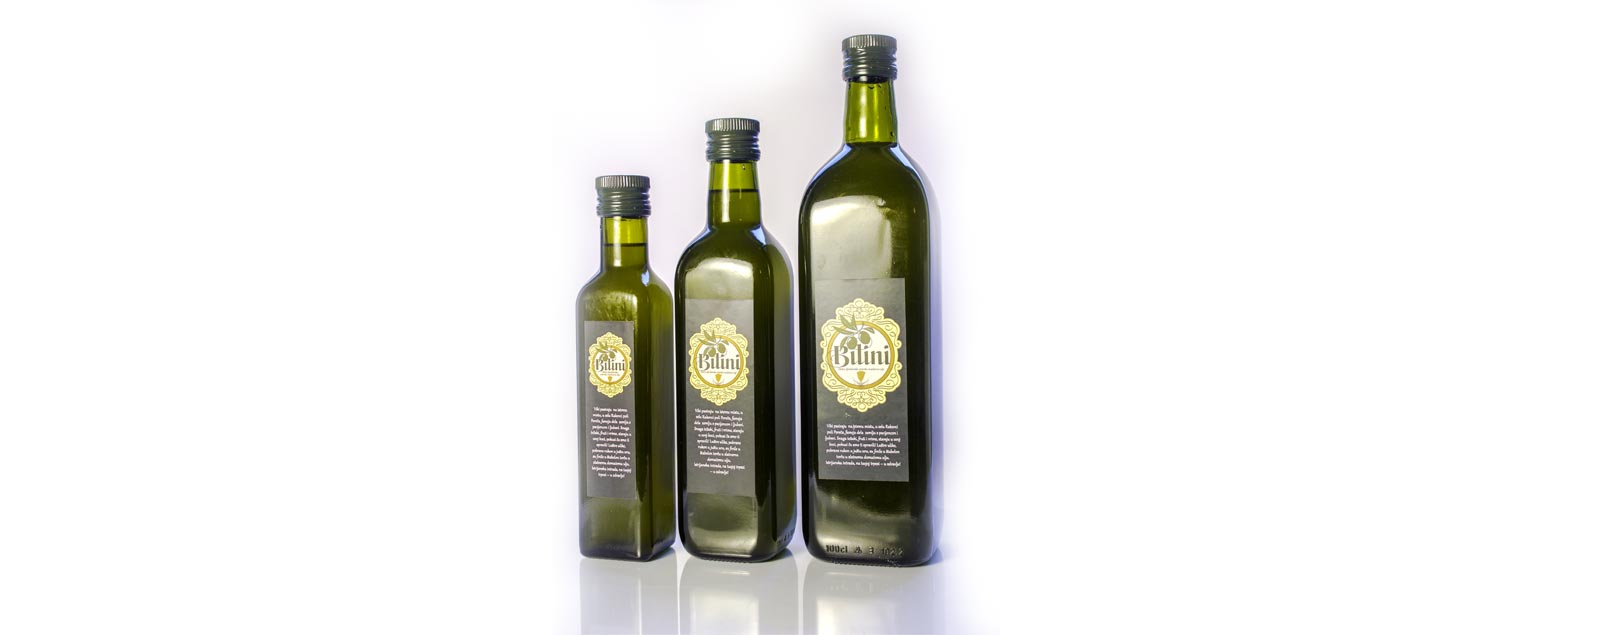 extra virgin olive oil Bilini